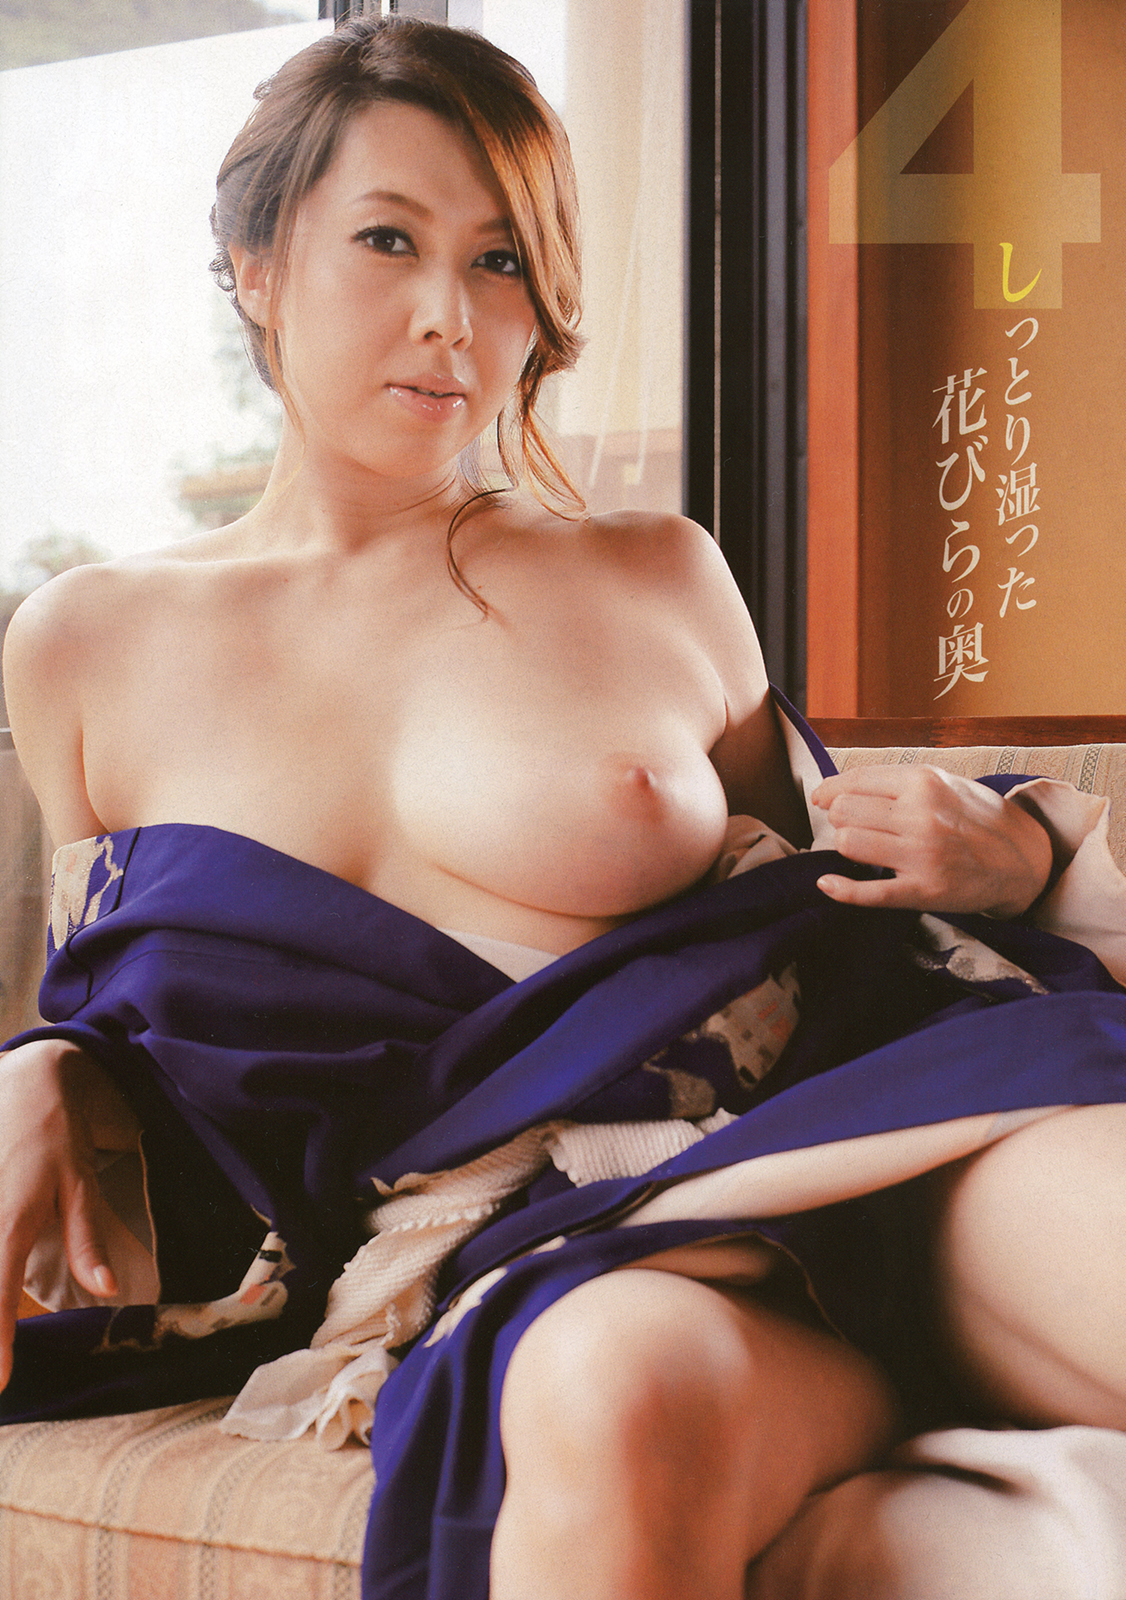 photo nude kazama yumi